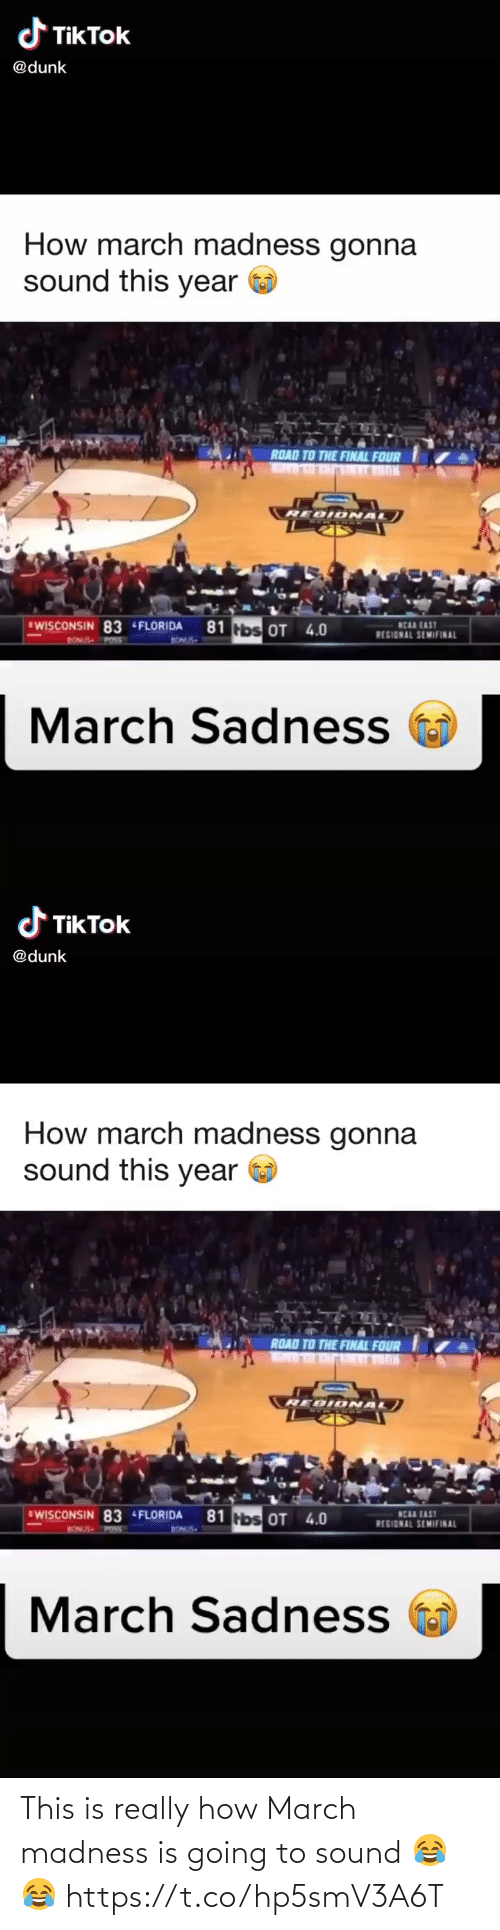 White People: This is really how March madness is going to sound 😂😂 https://t.co/hp5smV3A6T